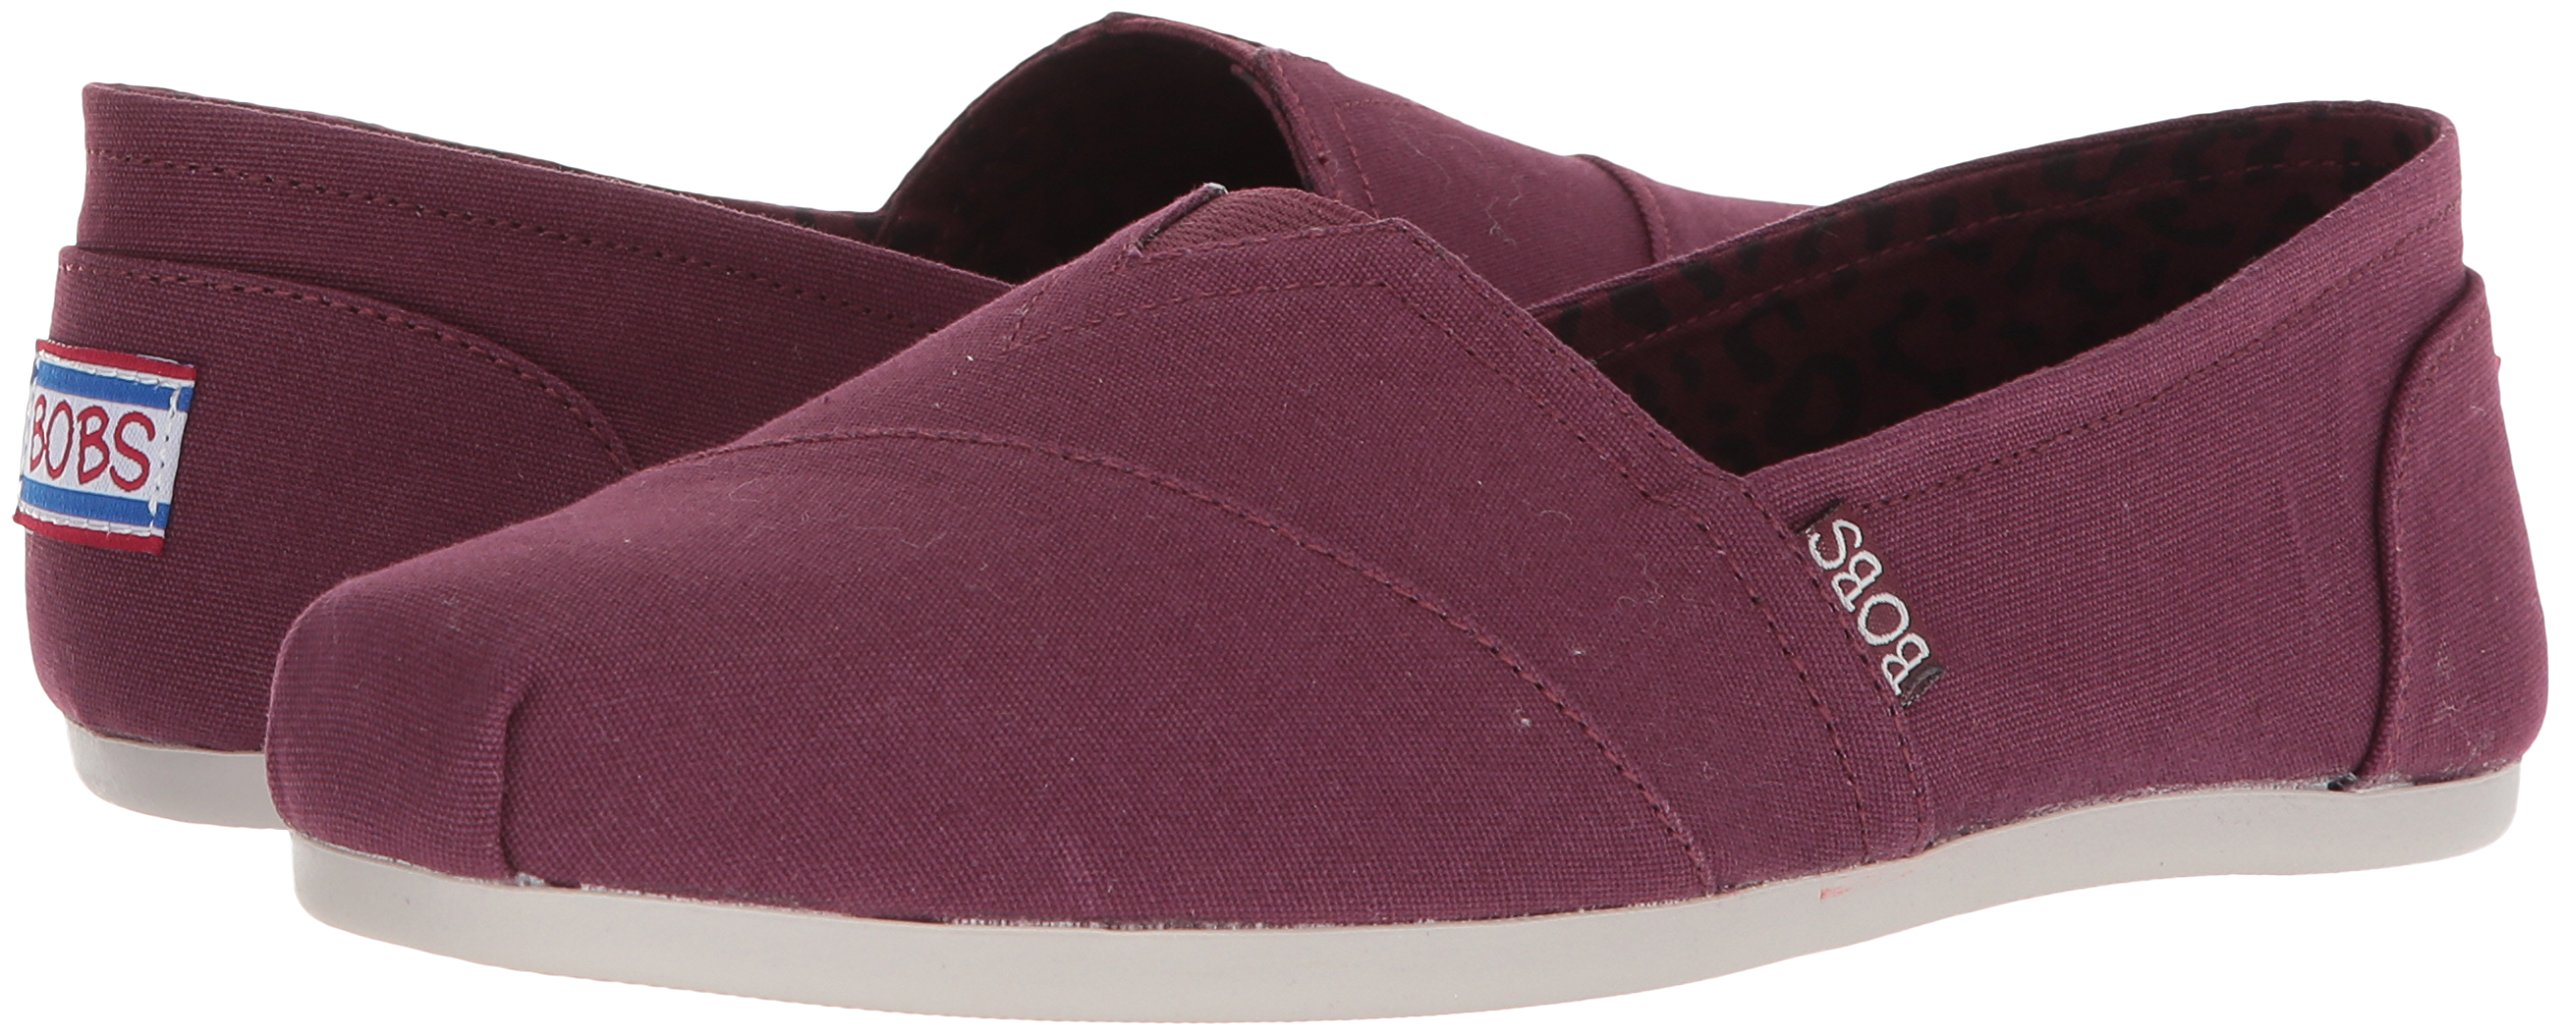 Skechers BOBS Women's Plush-Peace and Love Ballet Flat, Burgundy, 8 M US by Skechers (Image #5)